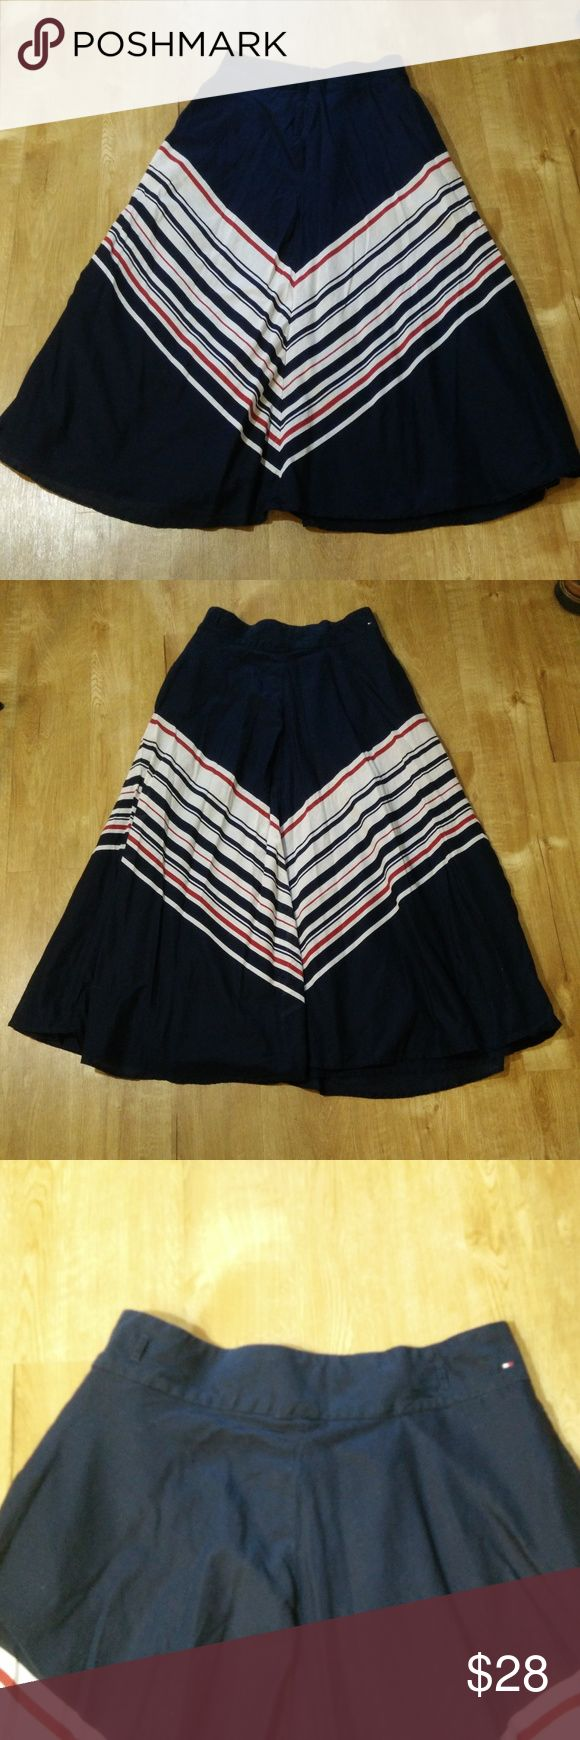 "Tommy Hilfiger Navy Cotton Striped A-Line Skirt 8 Tommy Hilfiger Womens Navy Cotton Striped Long A-Line  Cotton Lined Skirt  Size 8 - Classic looking skirt in VERY NICE overall condition with no flaws to note! (ref#2237)  Please see measurements for good fit  Measurements:  (With Pants Laying Flat – Actual Measurements are taken to the best of our ability and are approximate)     Waist  - 31""  Length  – 36"" Tommy Hilfiger Skirts A-Line or Full"